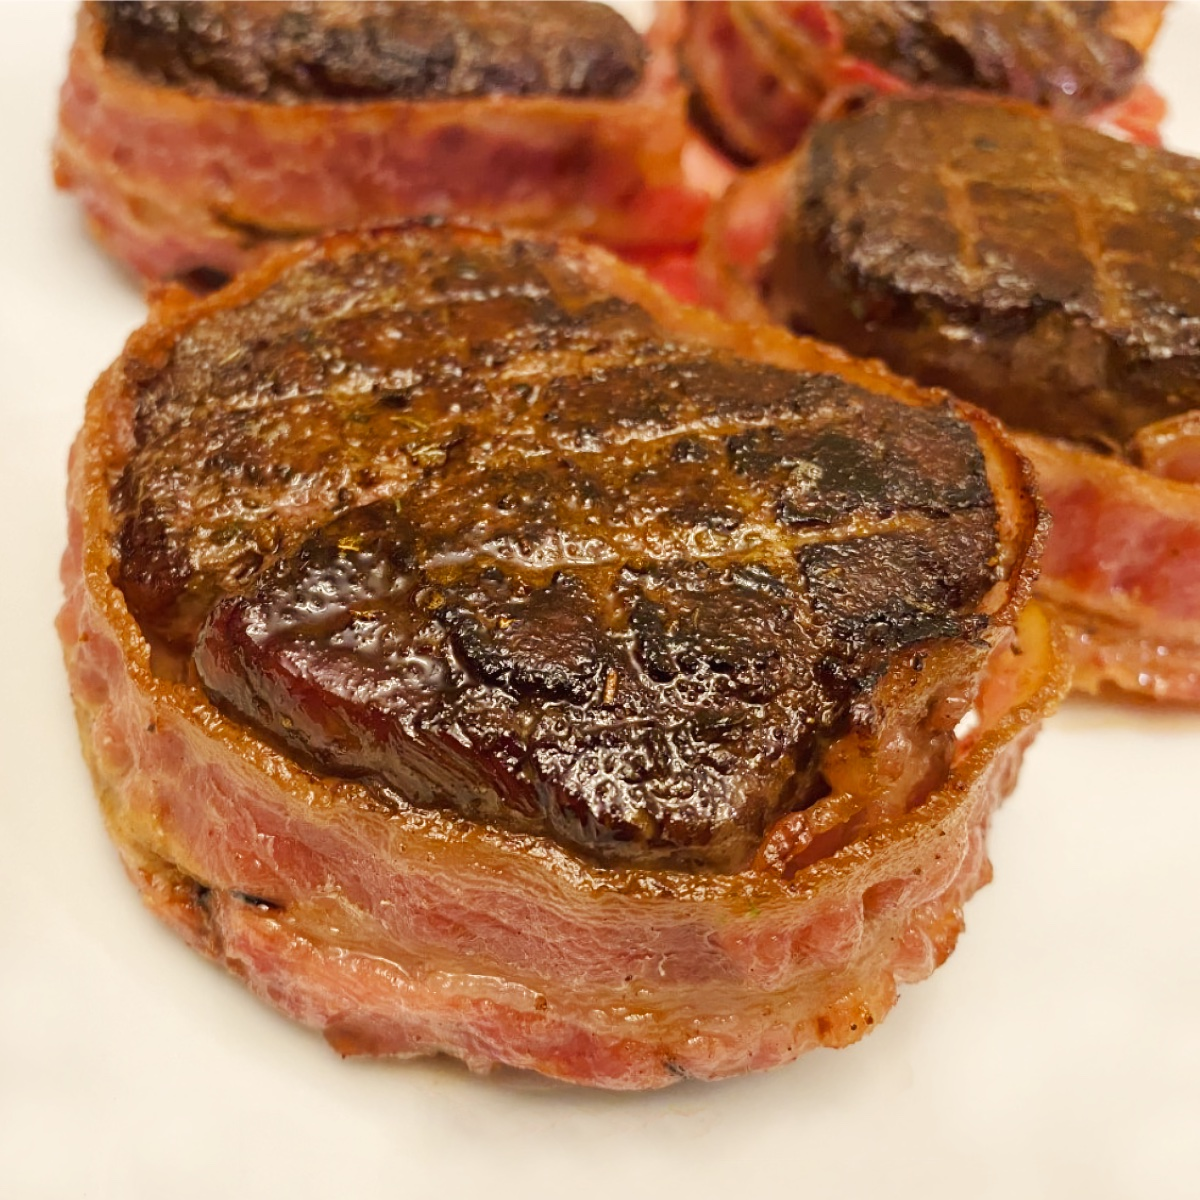 Close up view of reverse seared Filet Mignon bacon-wrapped steaks sitting on a white plate.